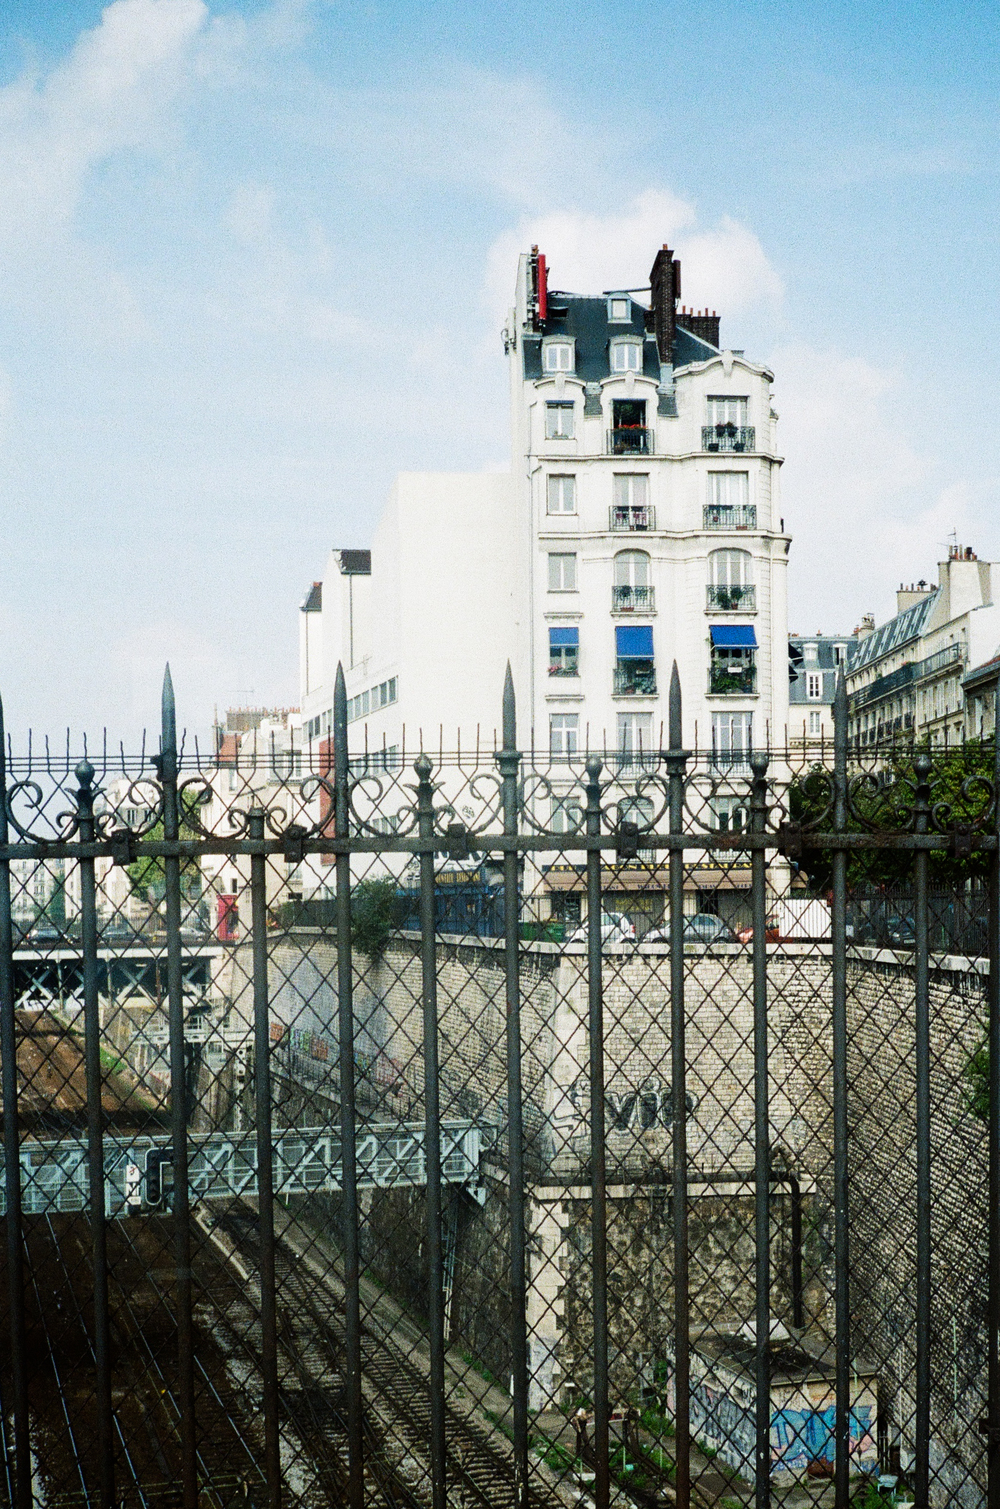 Untitled, Paris, 2014